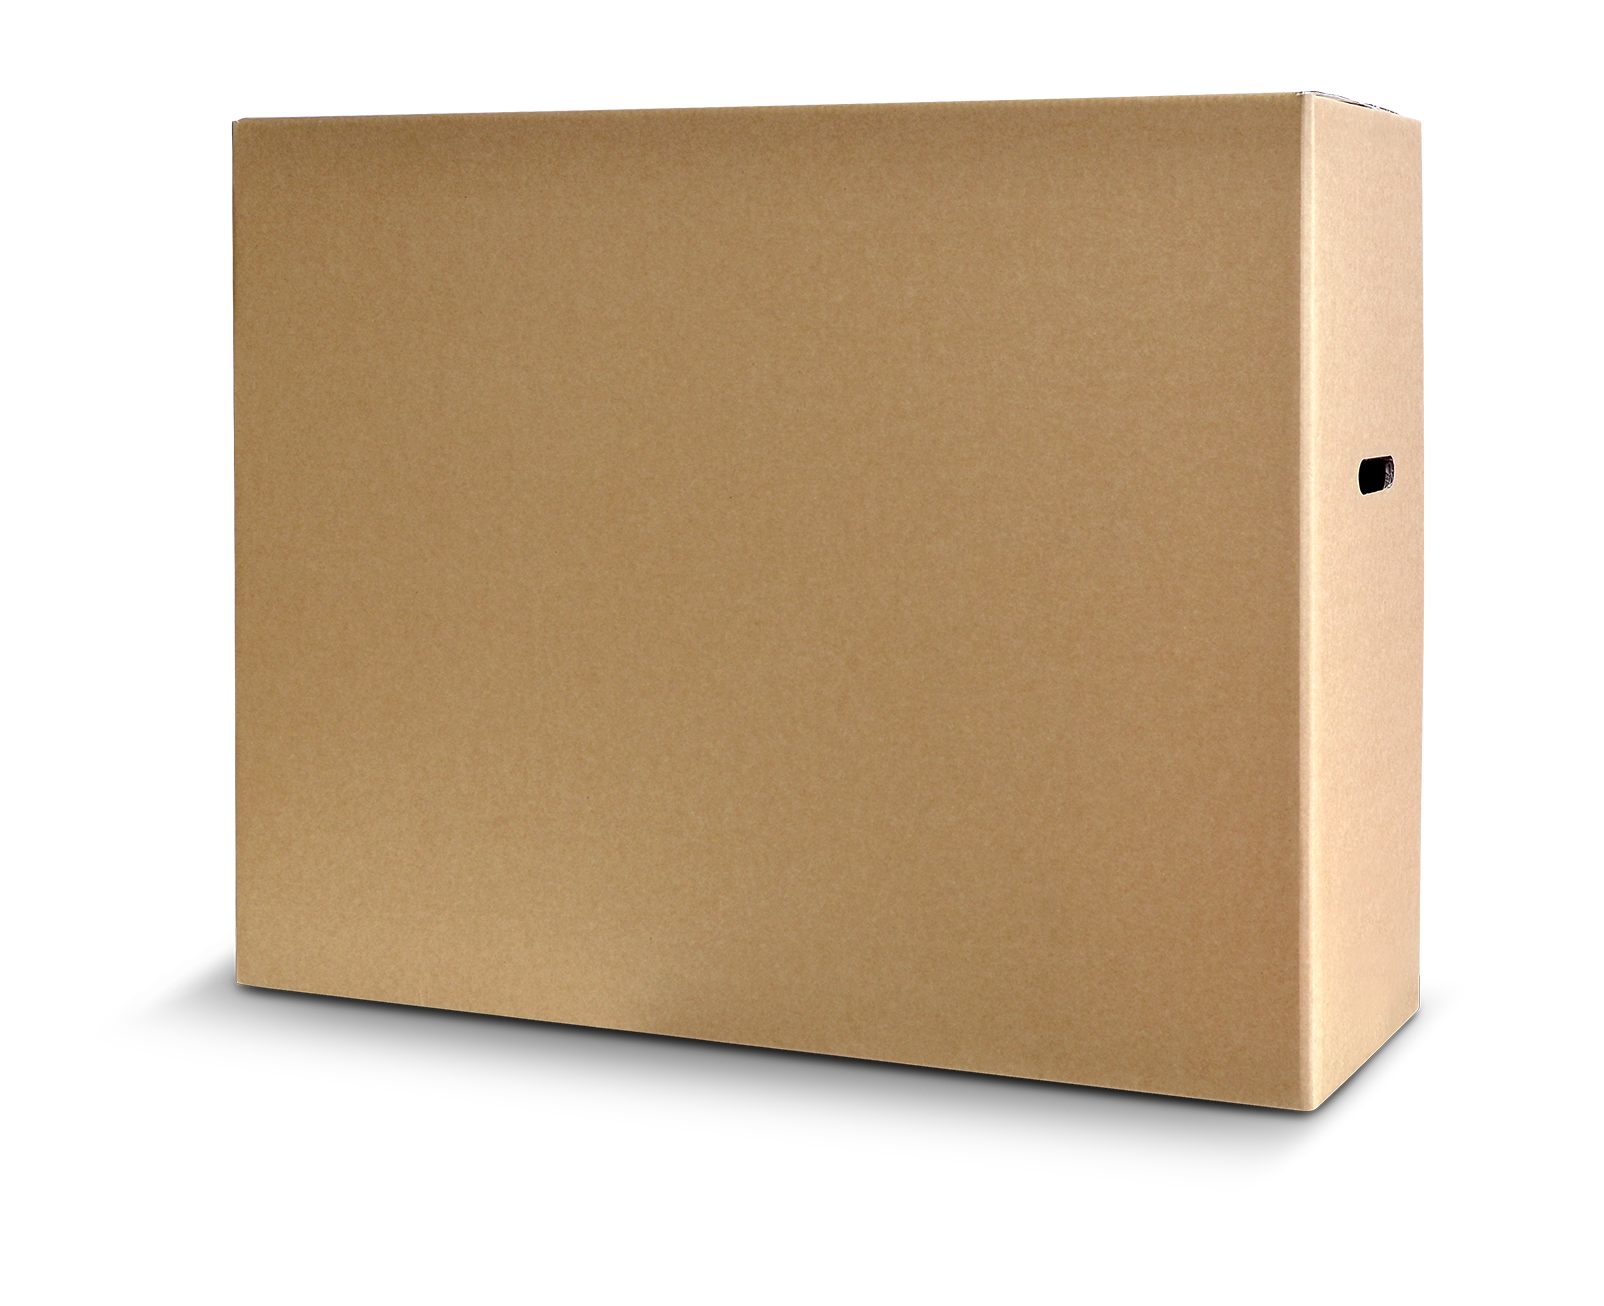 LCD-Small-Box_Closed_Angled.png